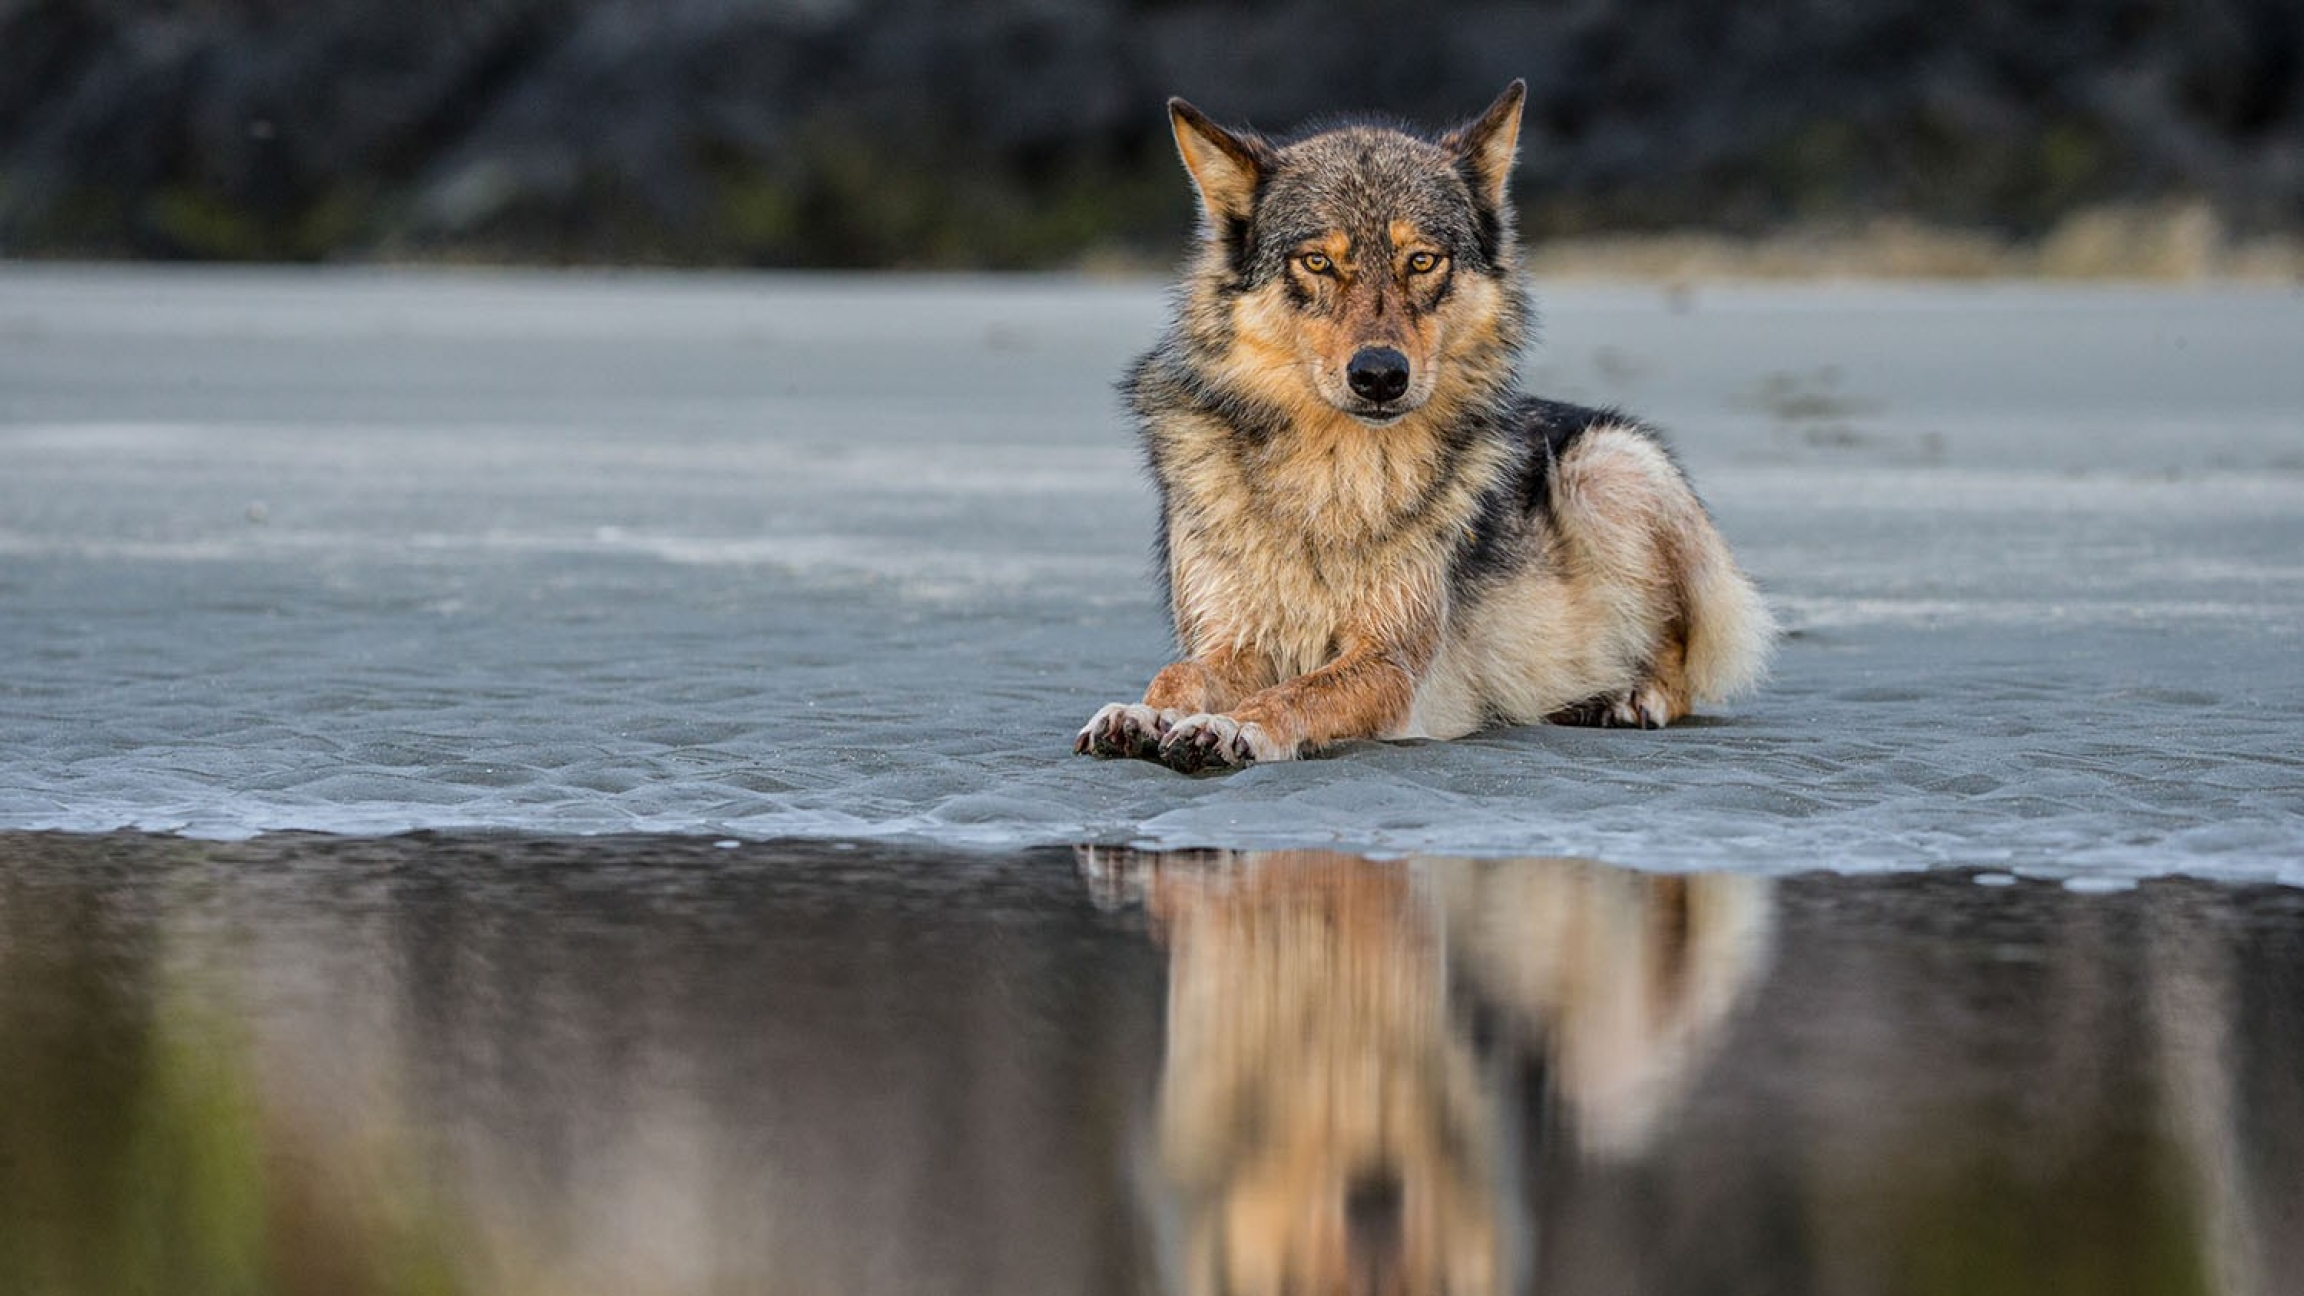 Sightings of the elusive coastal wolves are usually rare, with many visitors only finding foot prints or hearing calls but not actually spotting the animals.